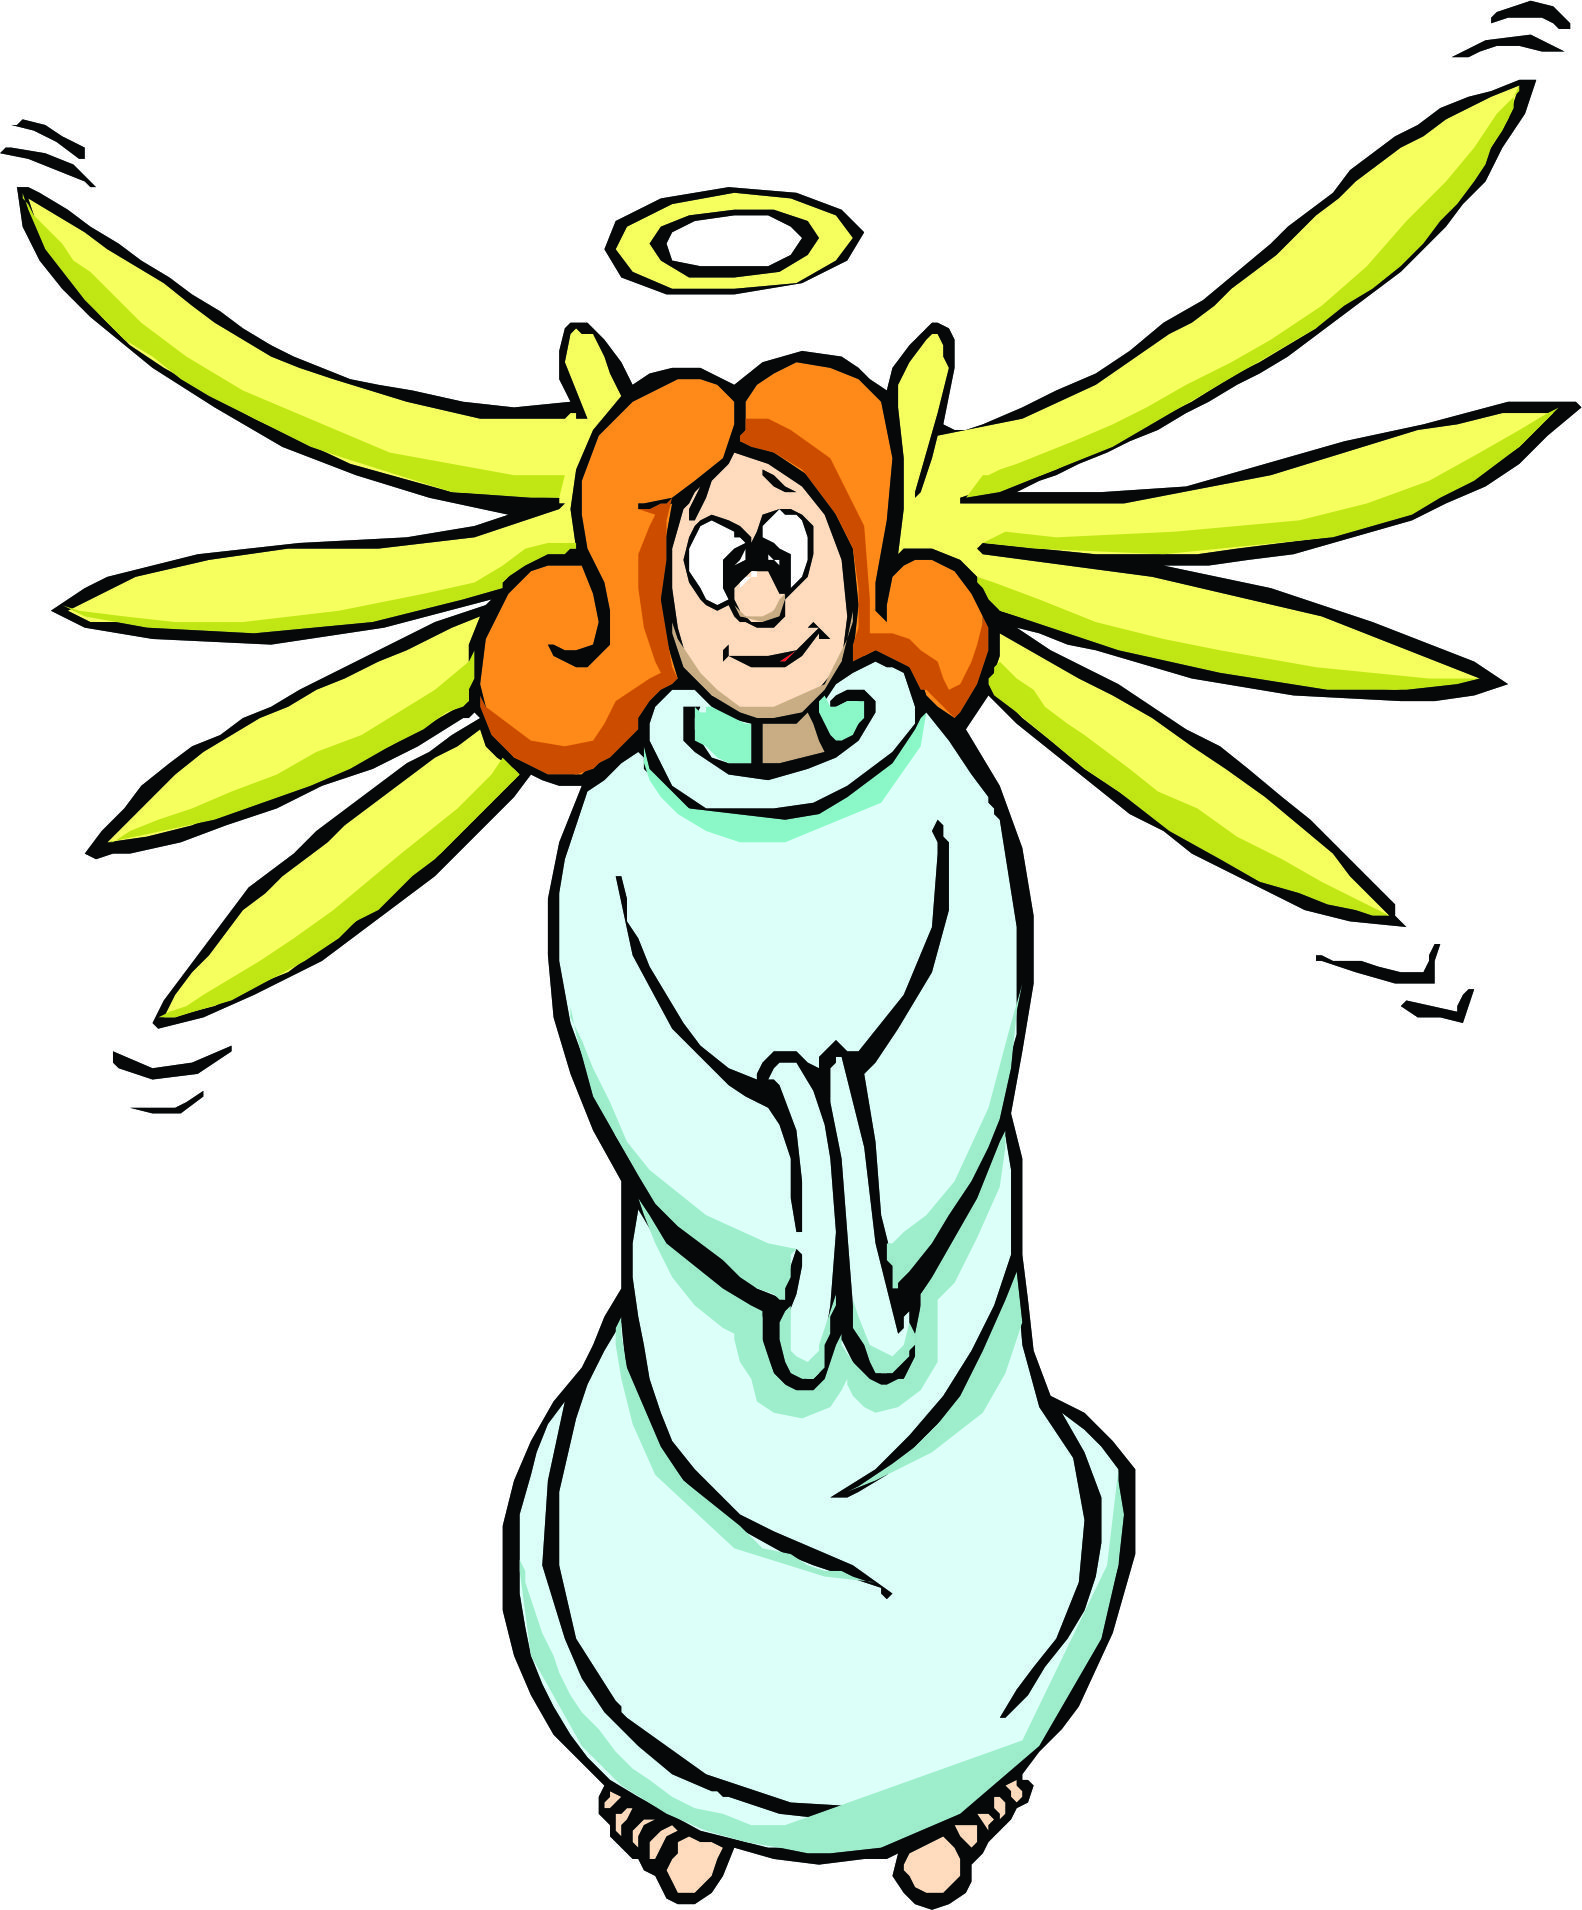 1582x1910 Cartoon Pictures Of Angels